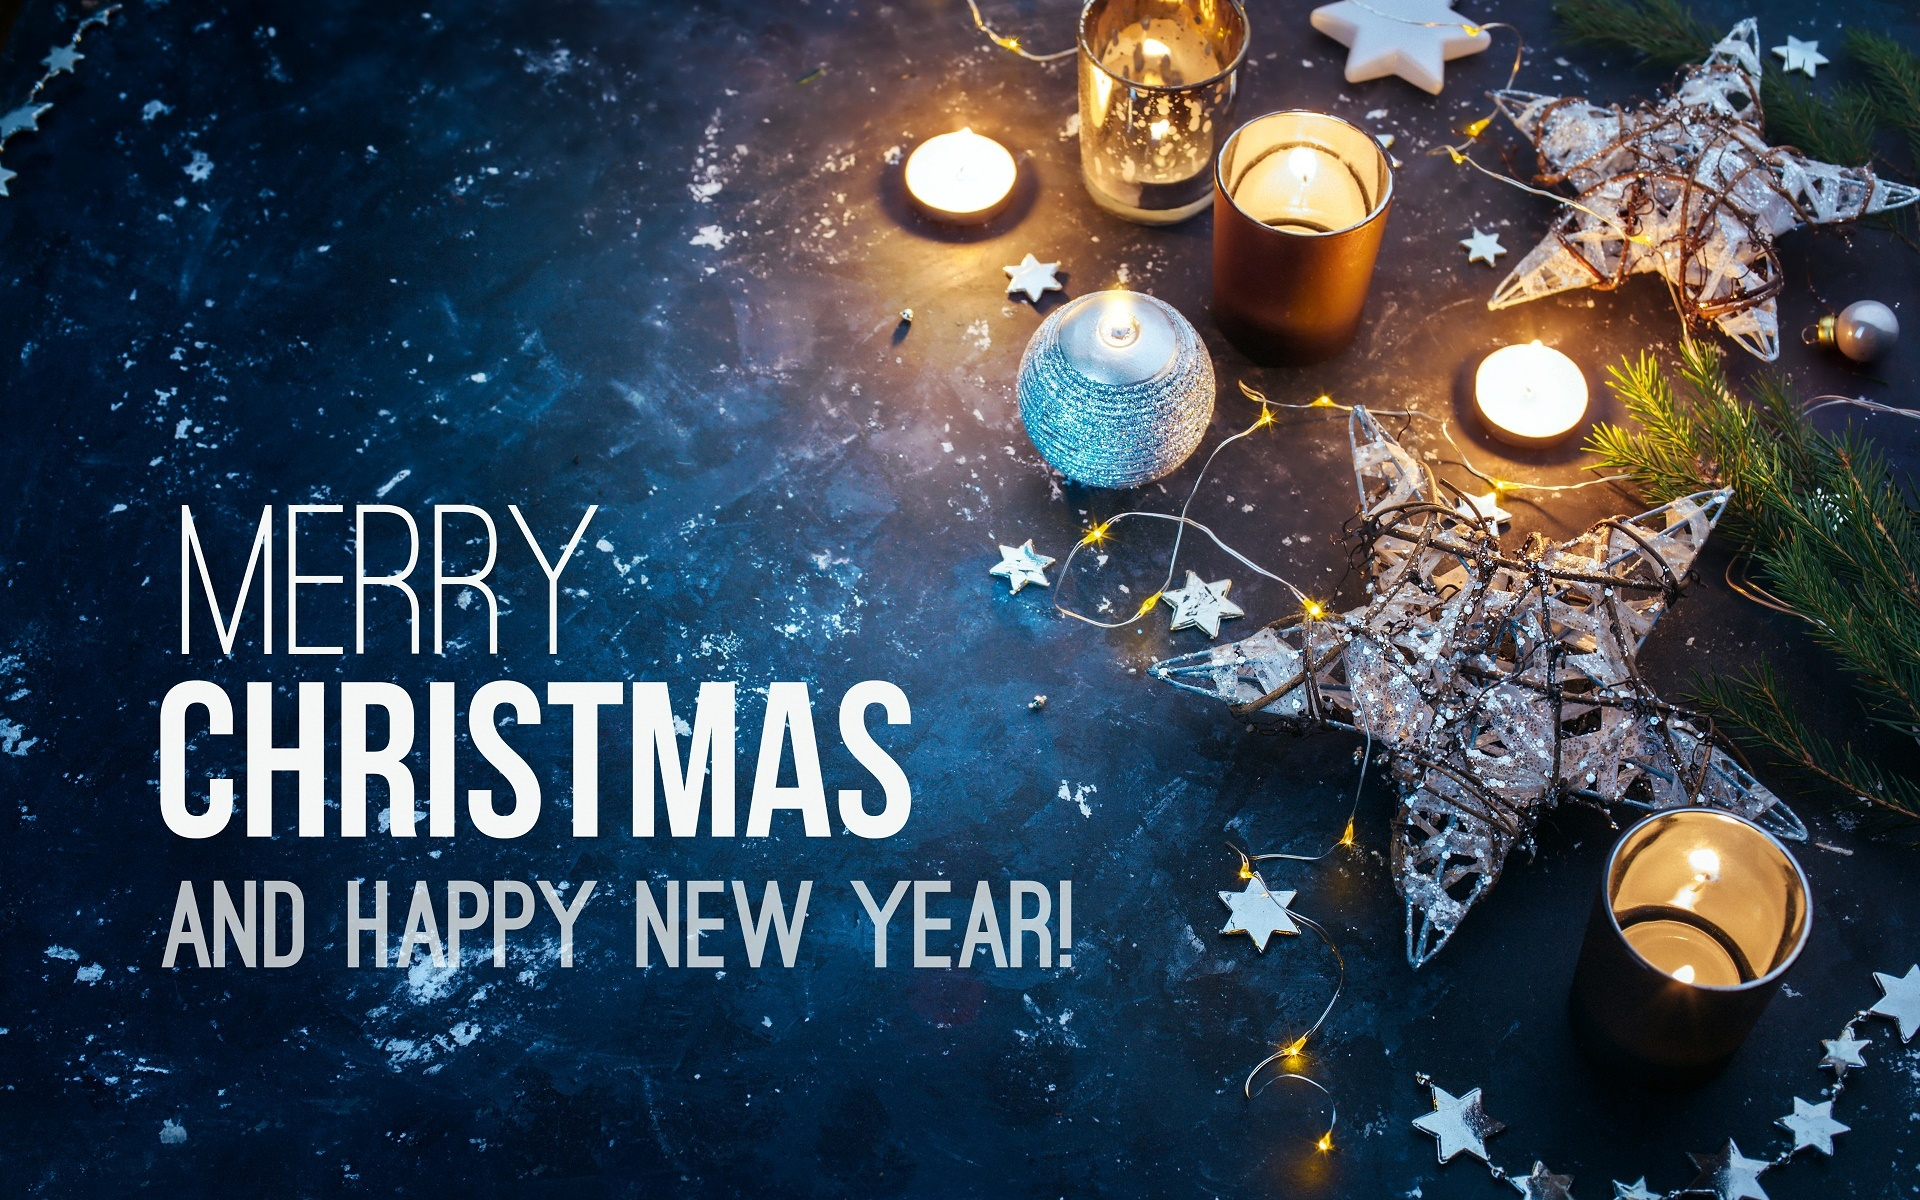 Christmas And A New Year Wishes , HD Wallpaper & Backgrounds